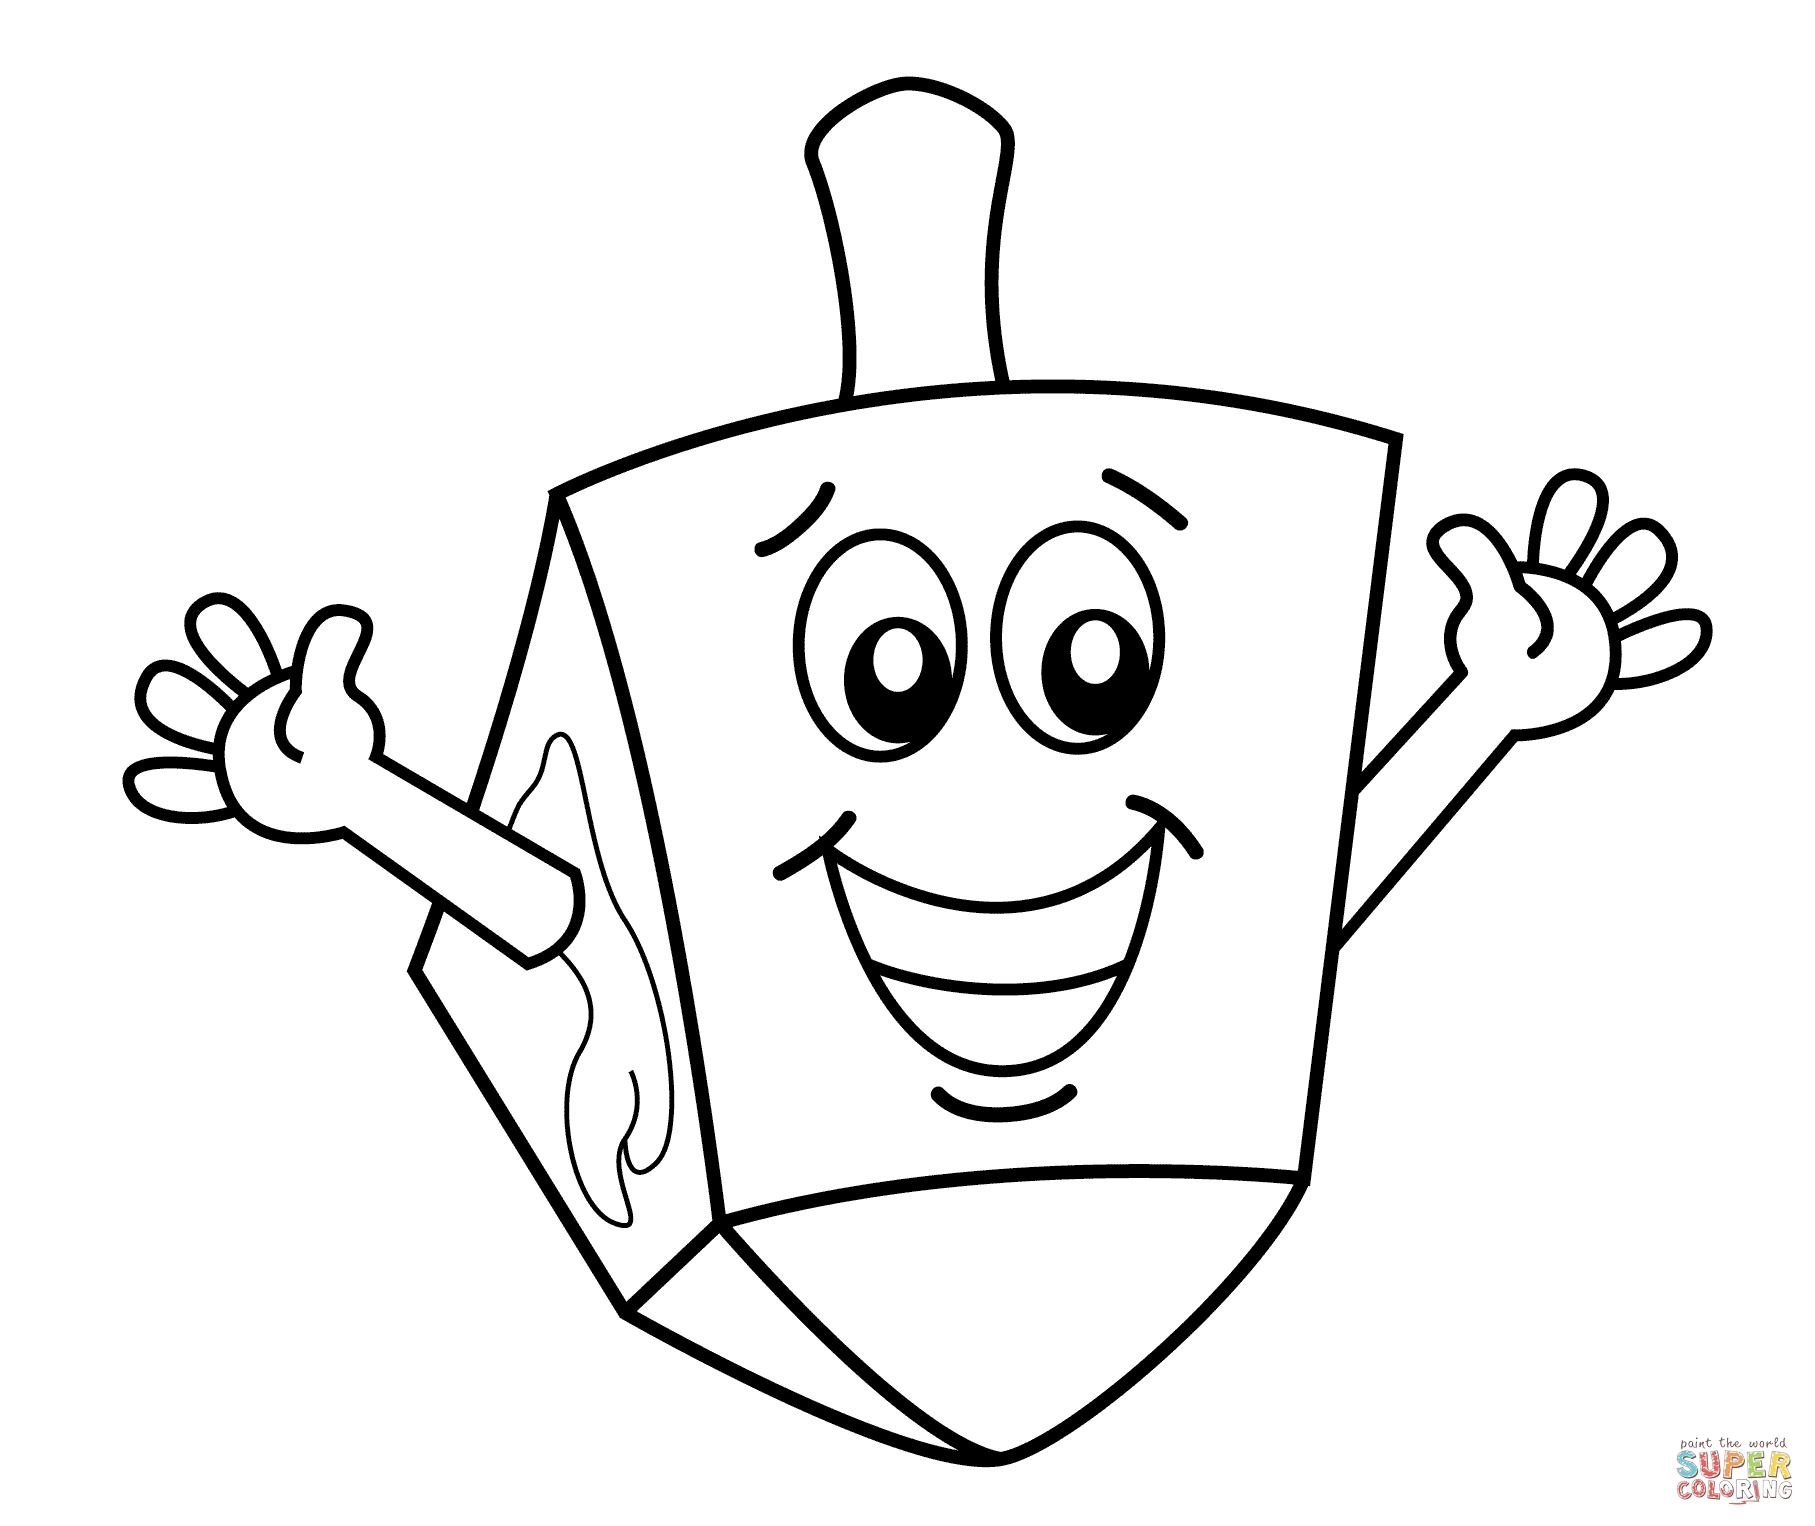 Hanukkah Coloring Pages Printable - Hanukkah Dreidel Coloring Page